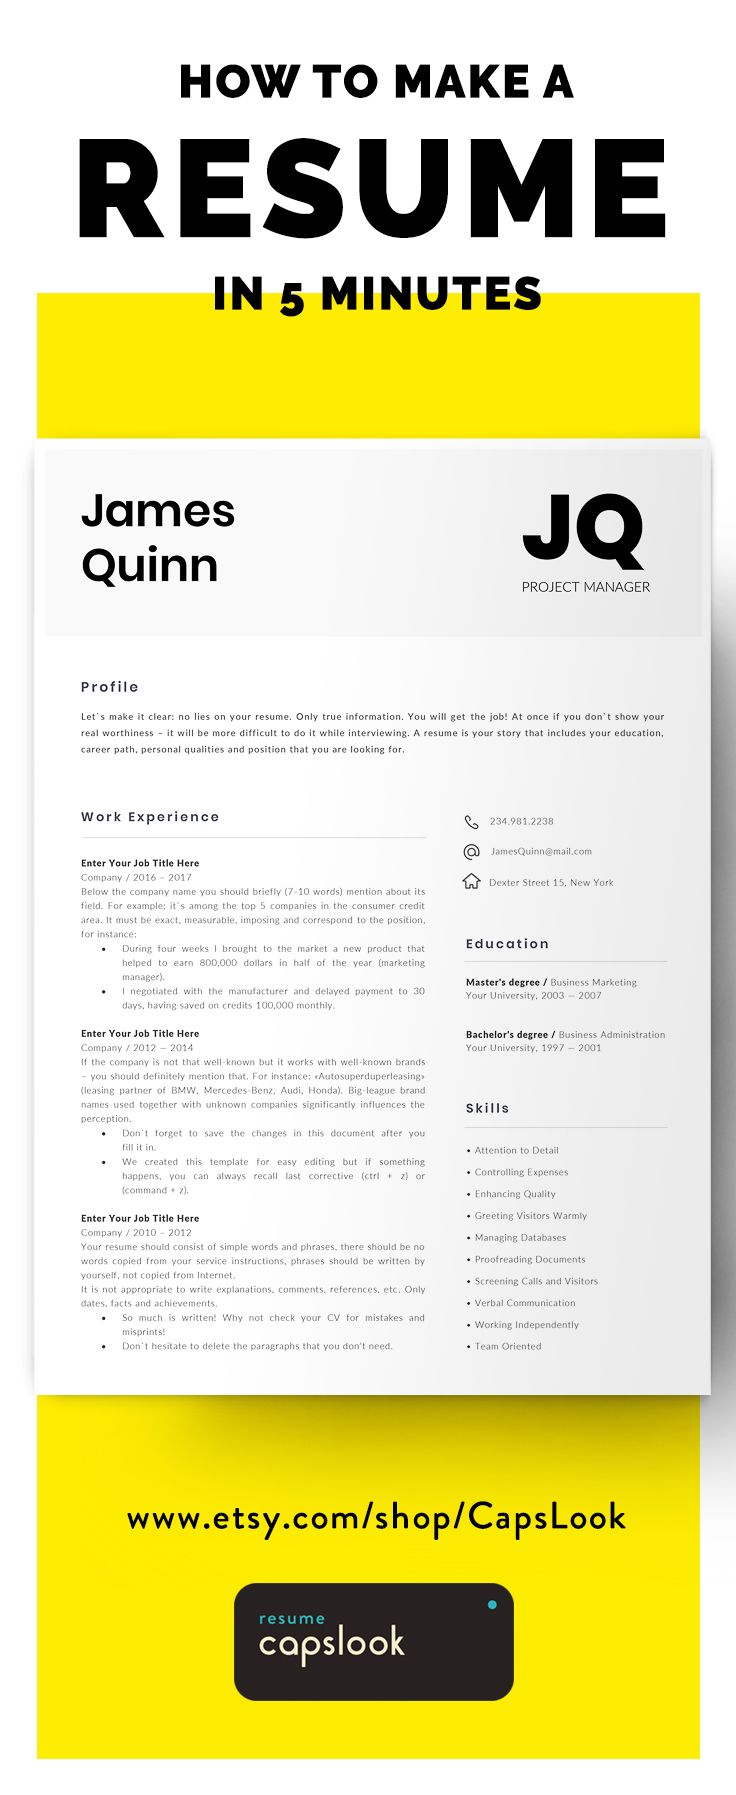 Information Technology Resume Template, IT Resume Software